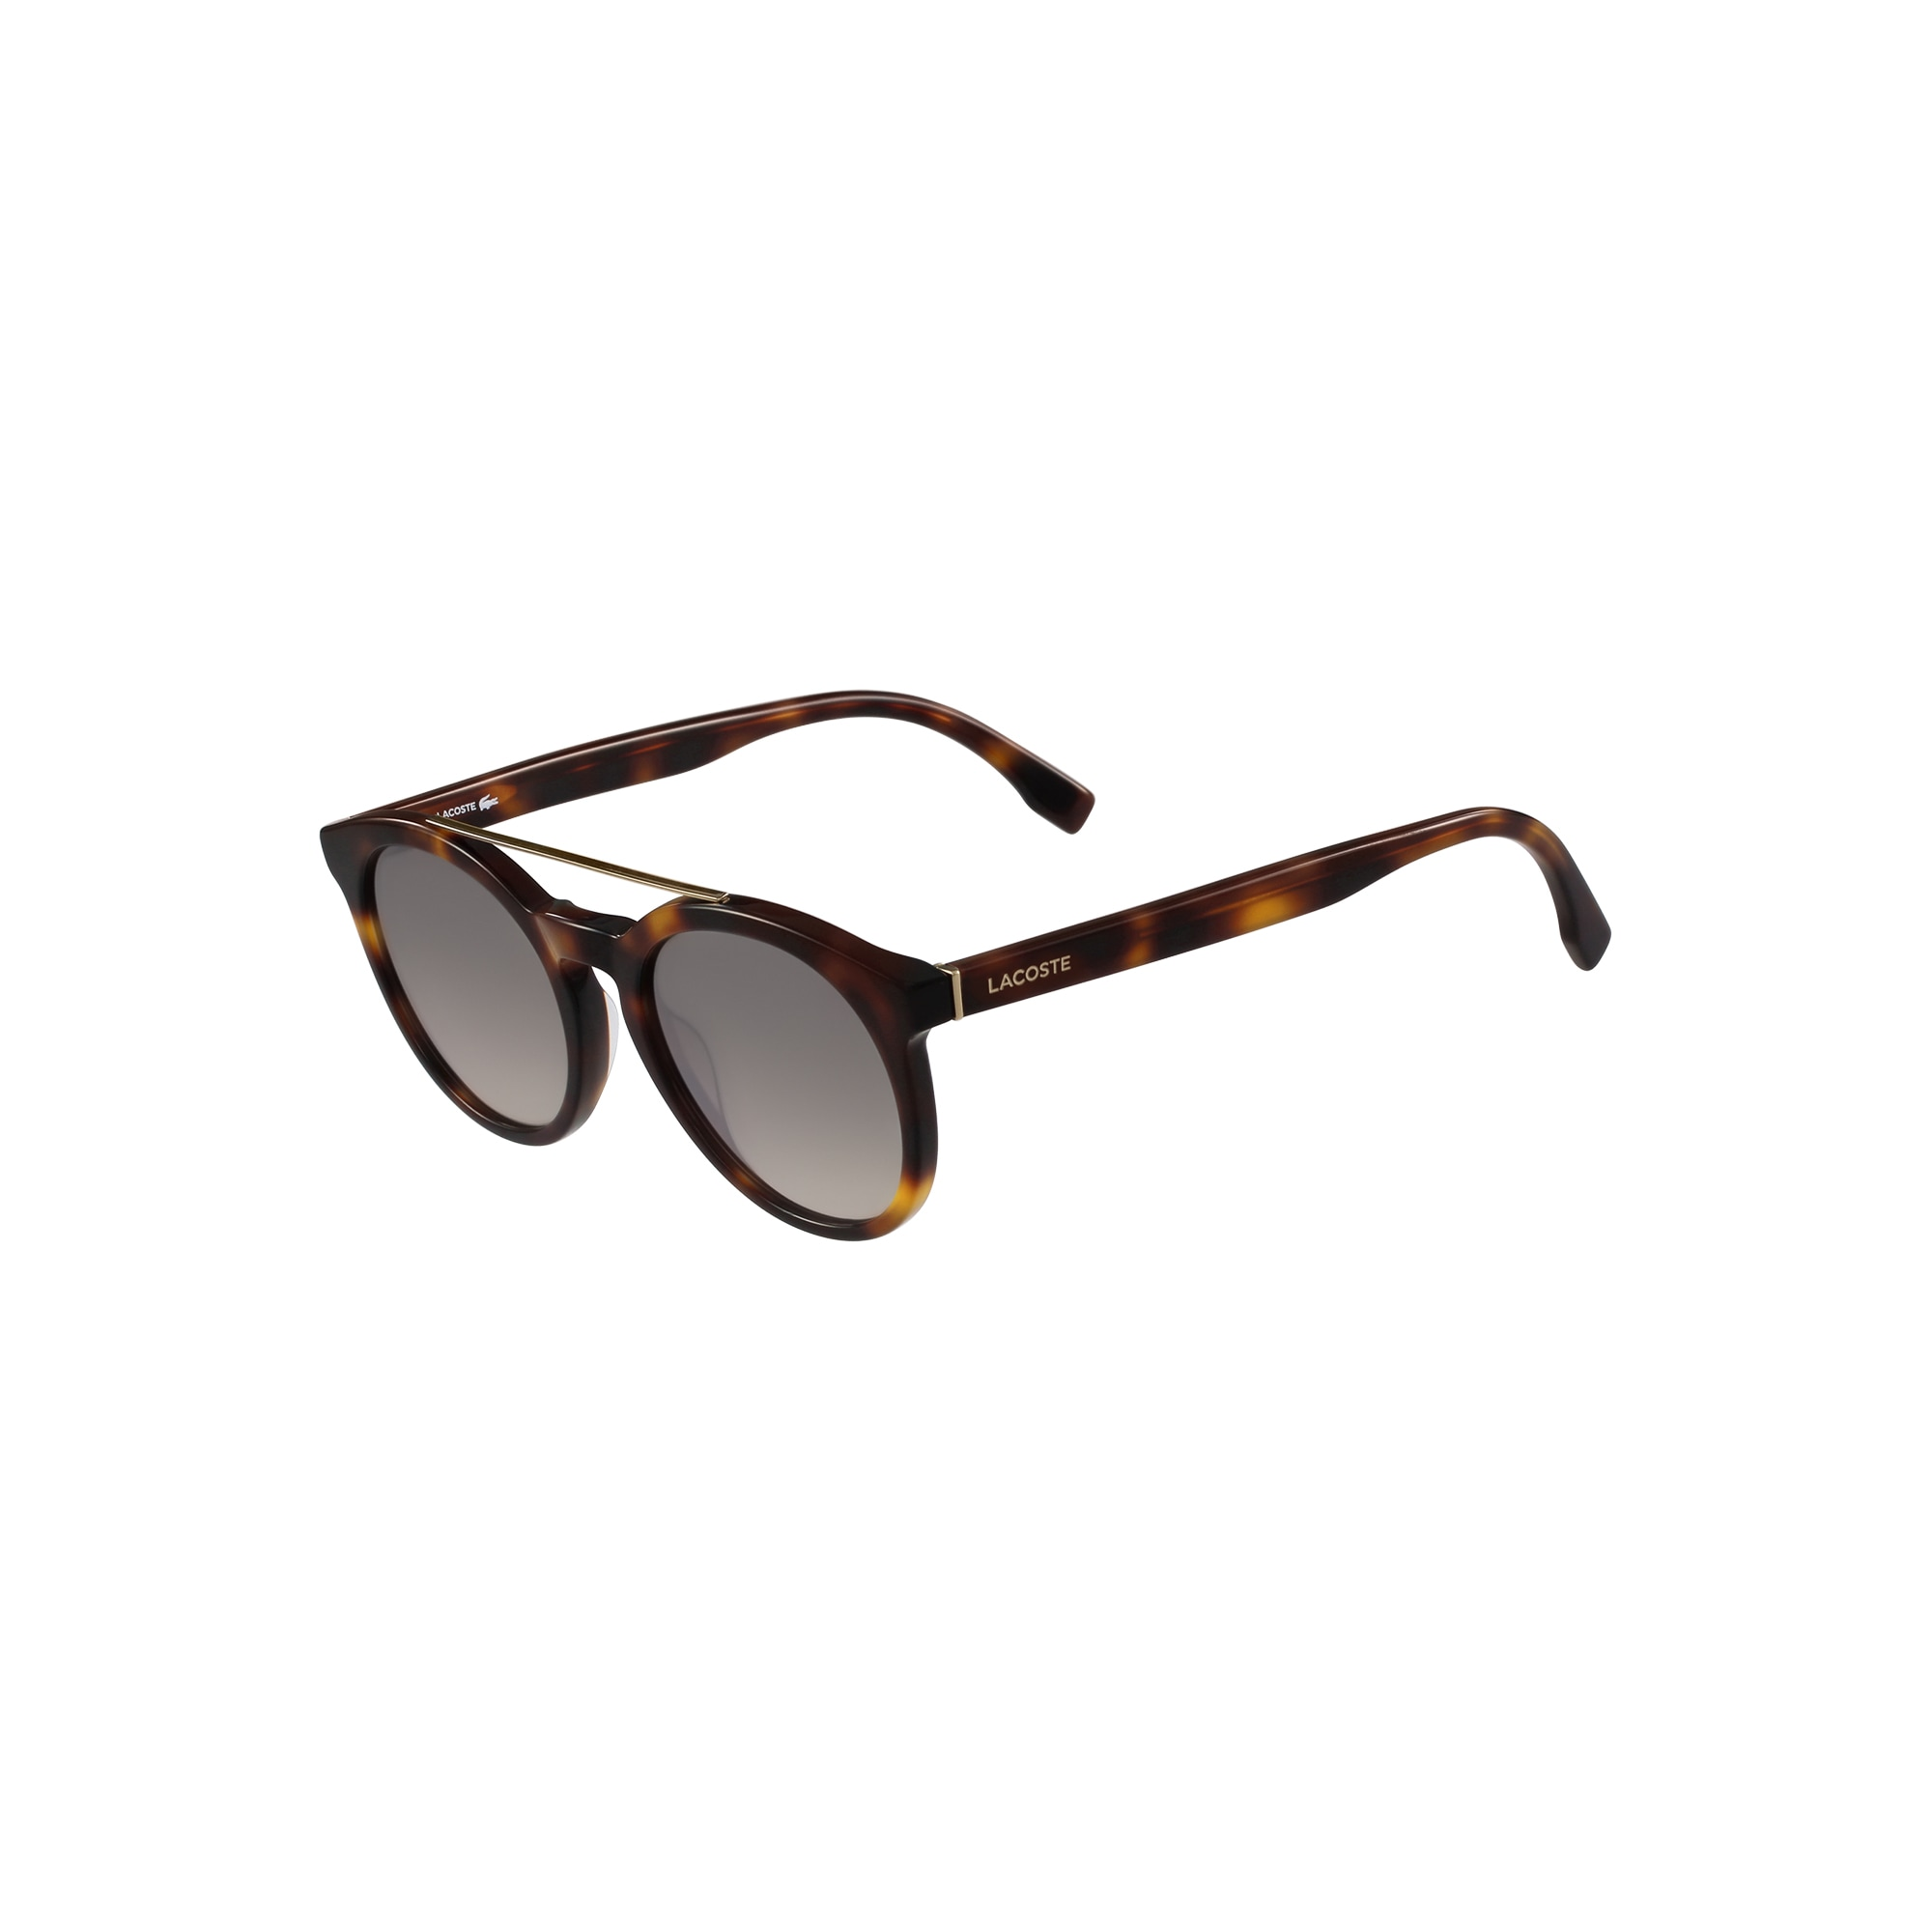 Unisex Lacoste Sunglasses with metal frames and gradient lens